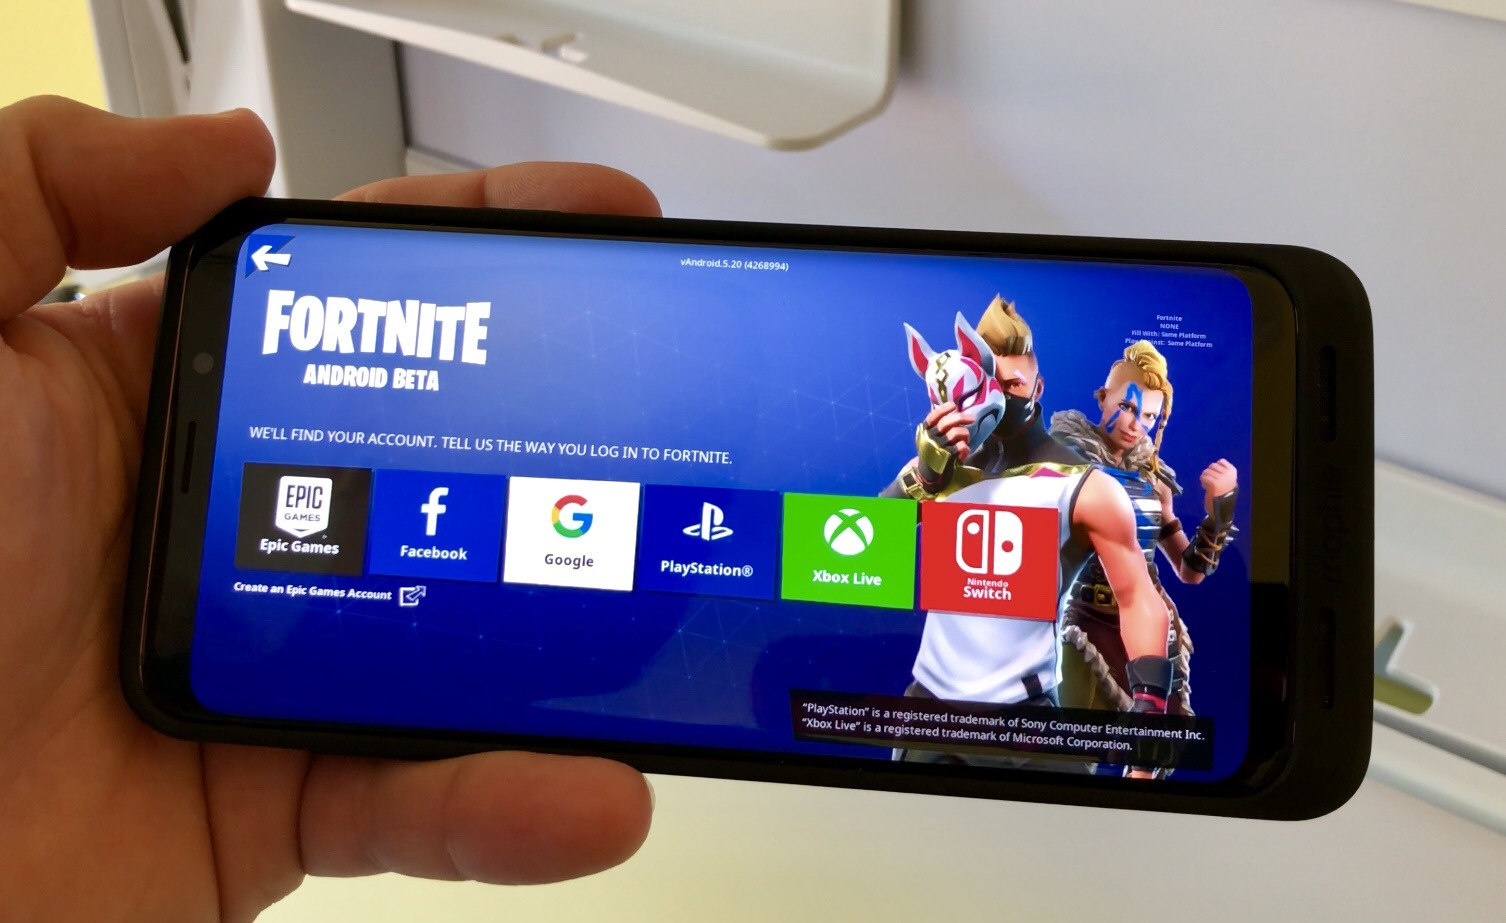 How To Fix The Fortnite Android Beta Get On The Waiting List Error